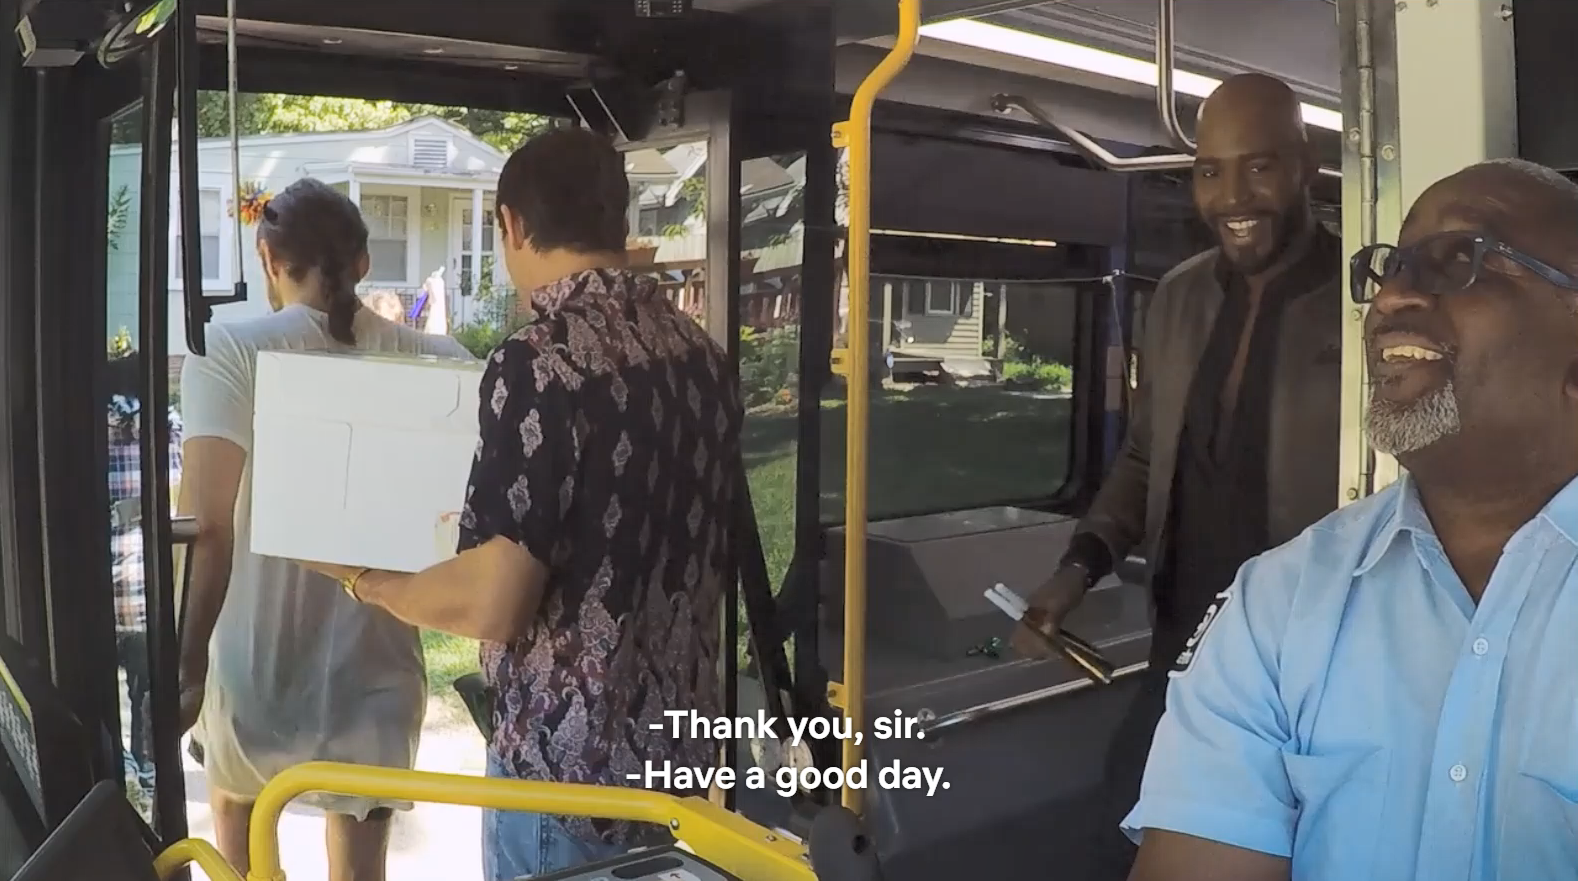 Queer Eye star Karamo thanks bus driver Fred Ersery as Karamo exits the RideKC bus.